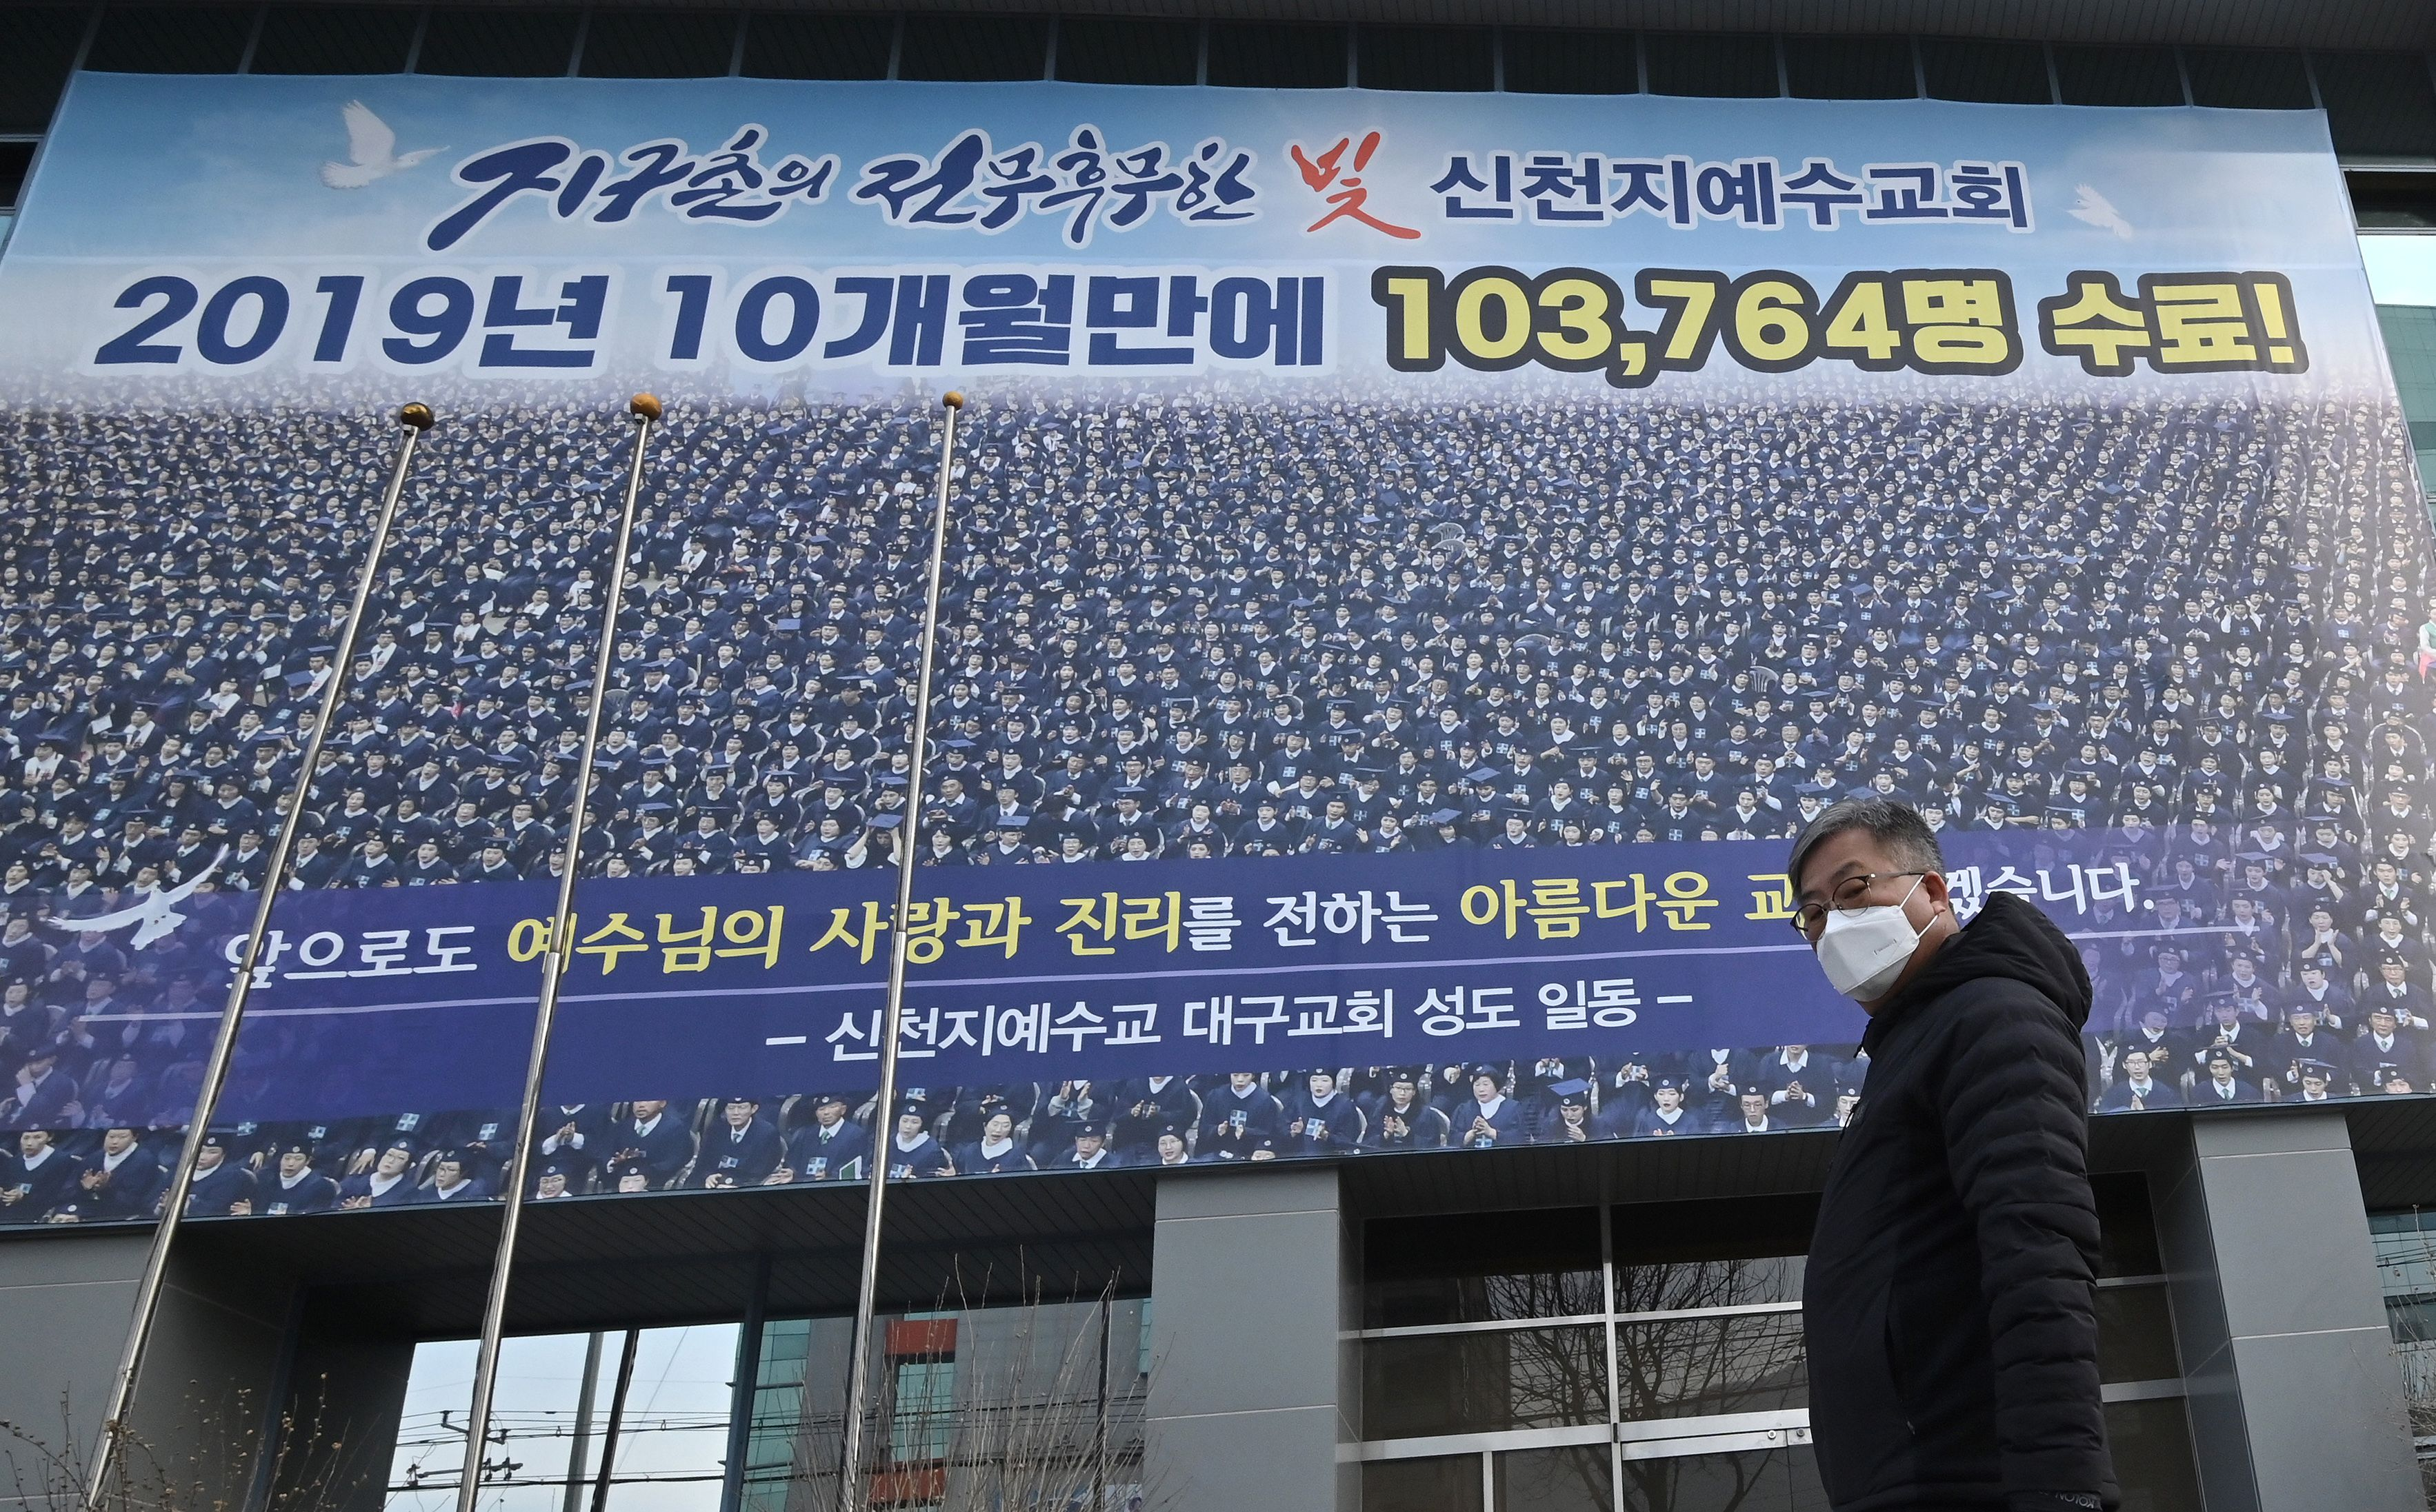 A man walks in front of the Daegu branch of the Shincheonji group in the South Korea city of Daegu on February 21.